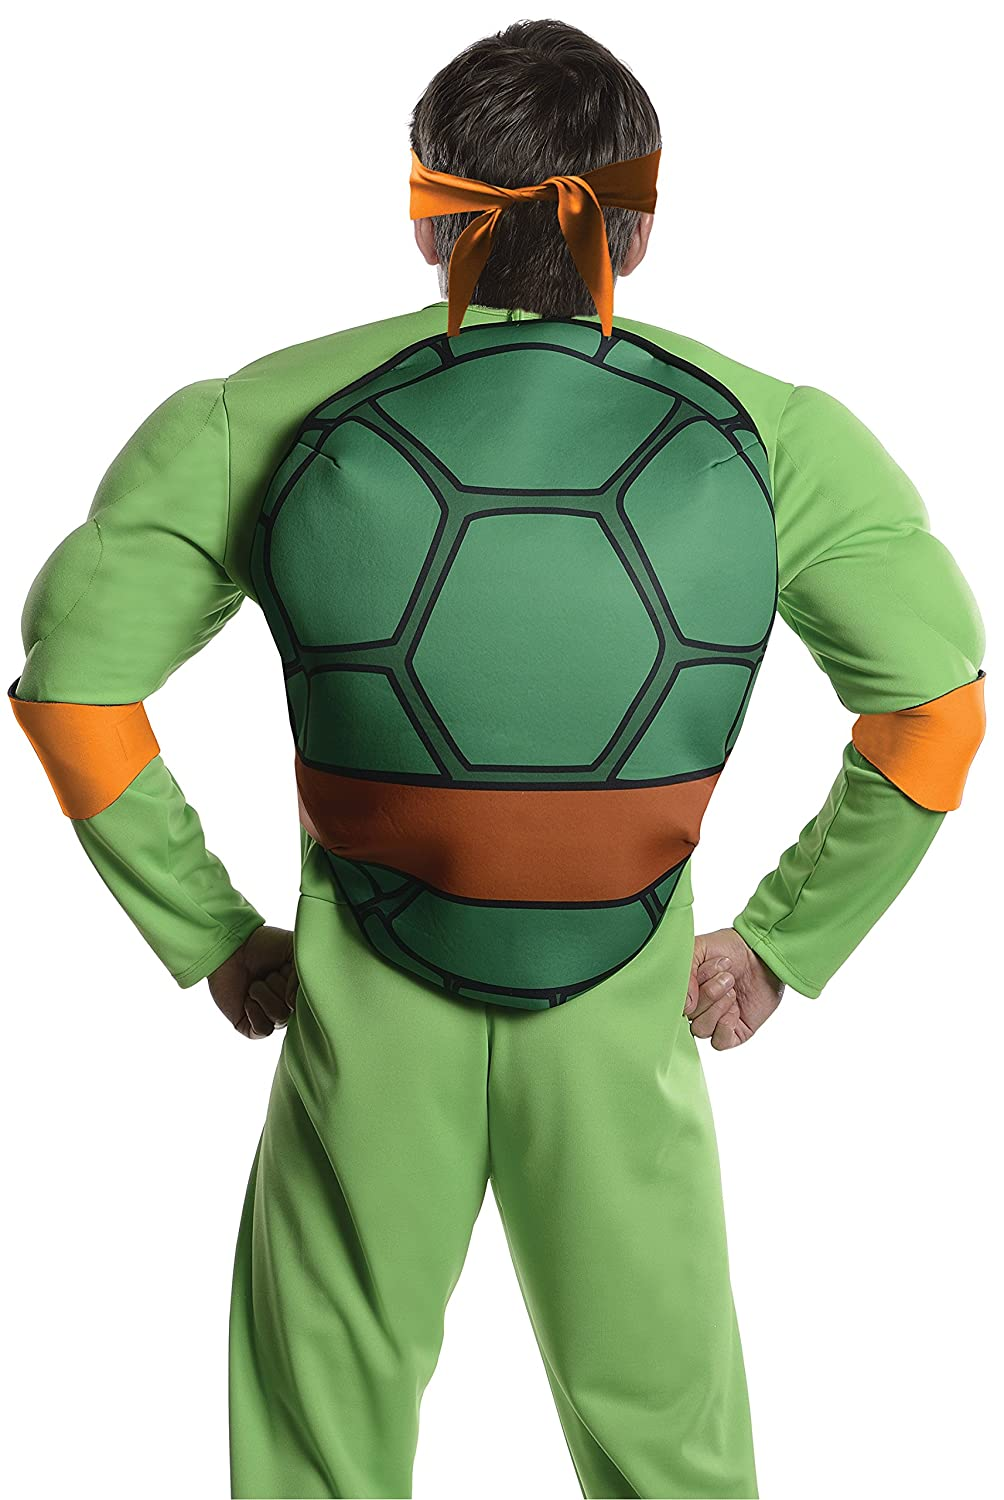 Amazon.com Rubieu0027s Costume Menu0027s Teenage Mutant Ninja Turtles Deluxe Adult Muscle Clothing  sc 1 st  Amazon.com & Amazon.com: Rubieu0027s Costume Menu0027s Teenage Mutant Ninja Turtles ...